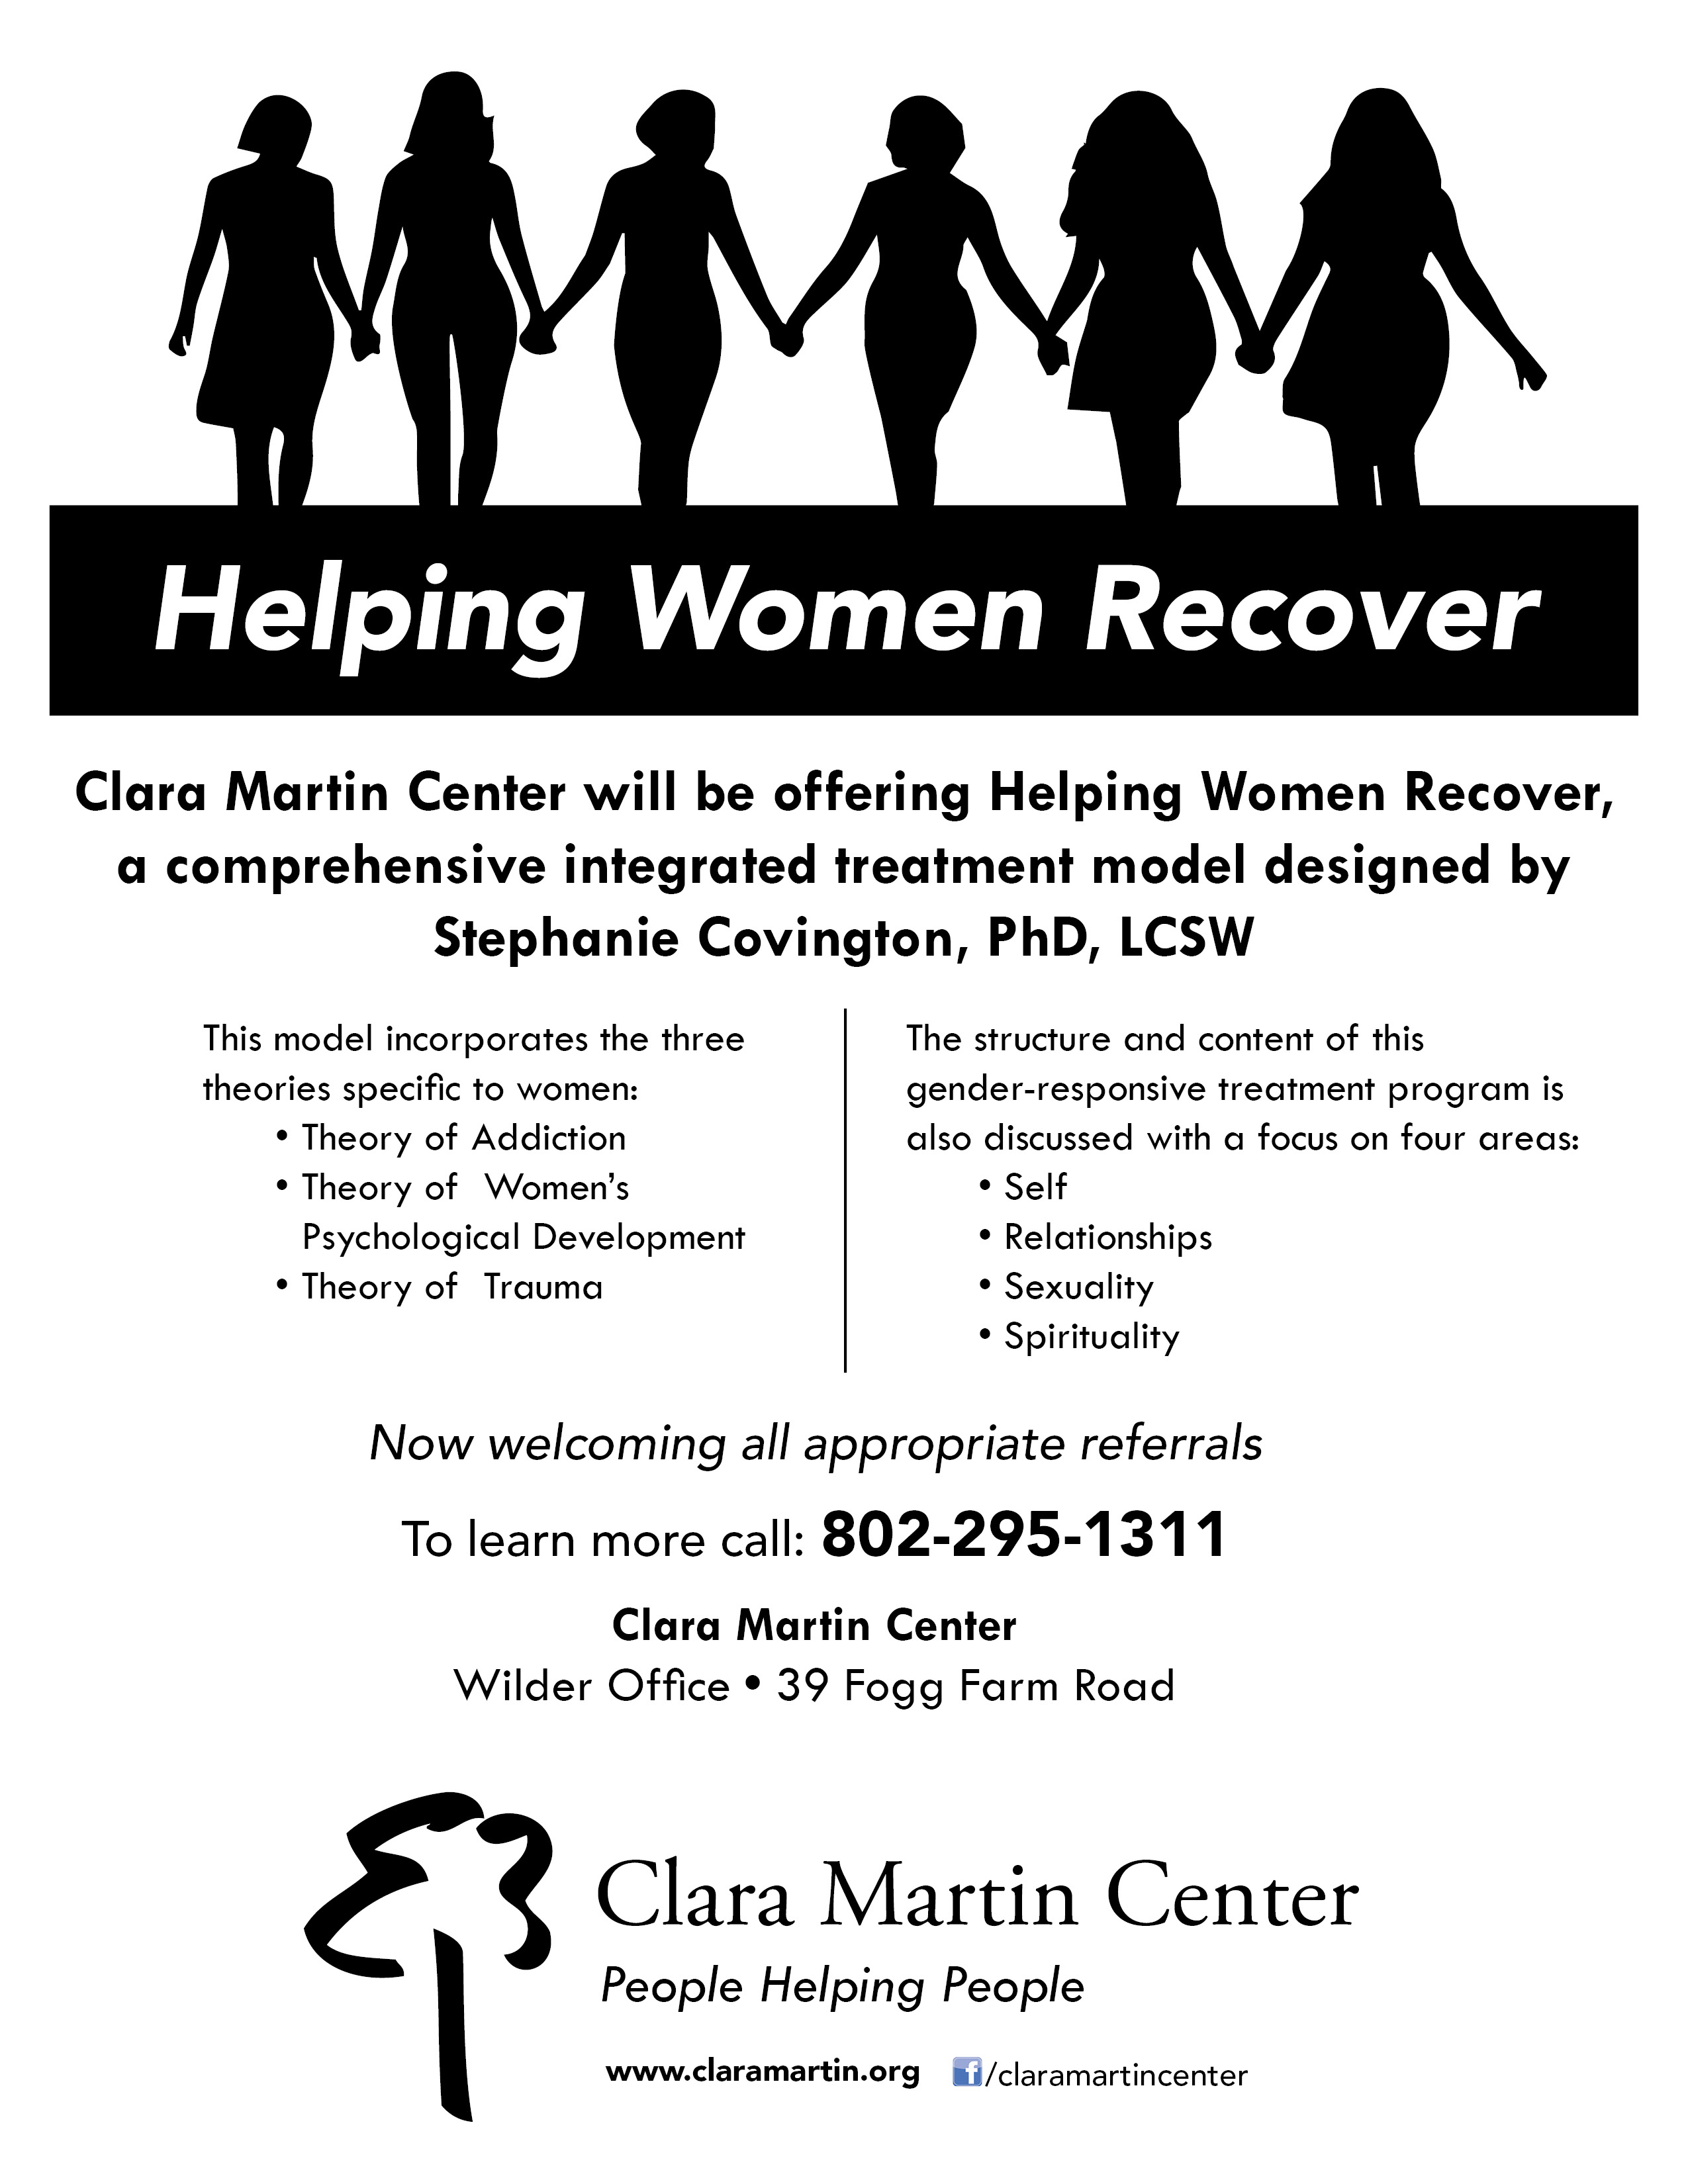 Helping Women Recover flyer